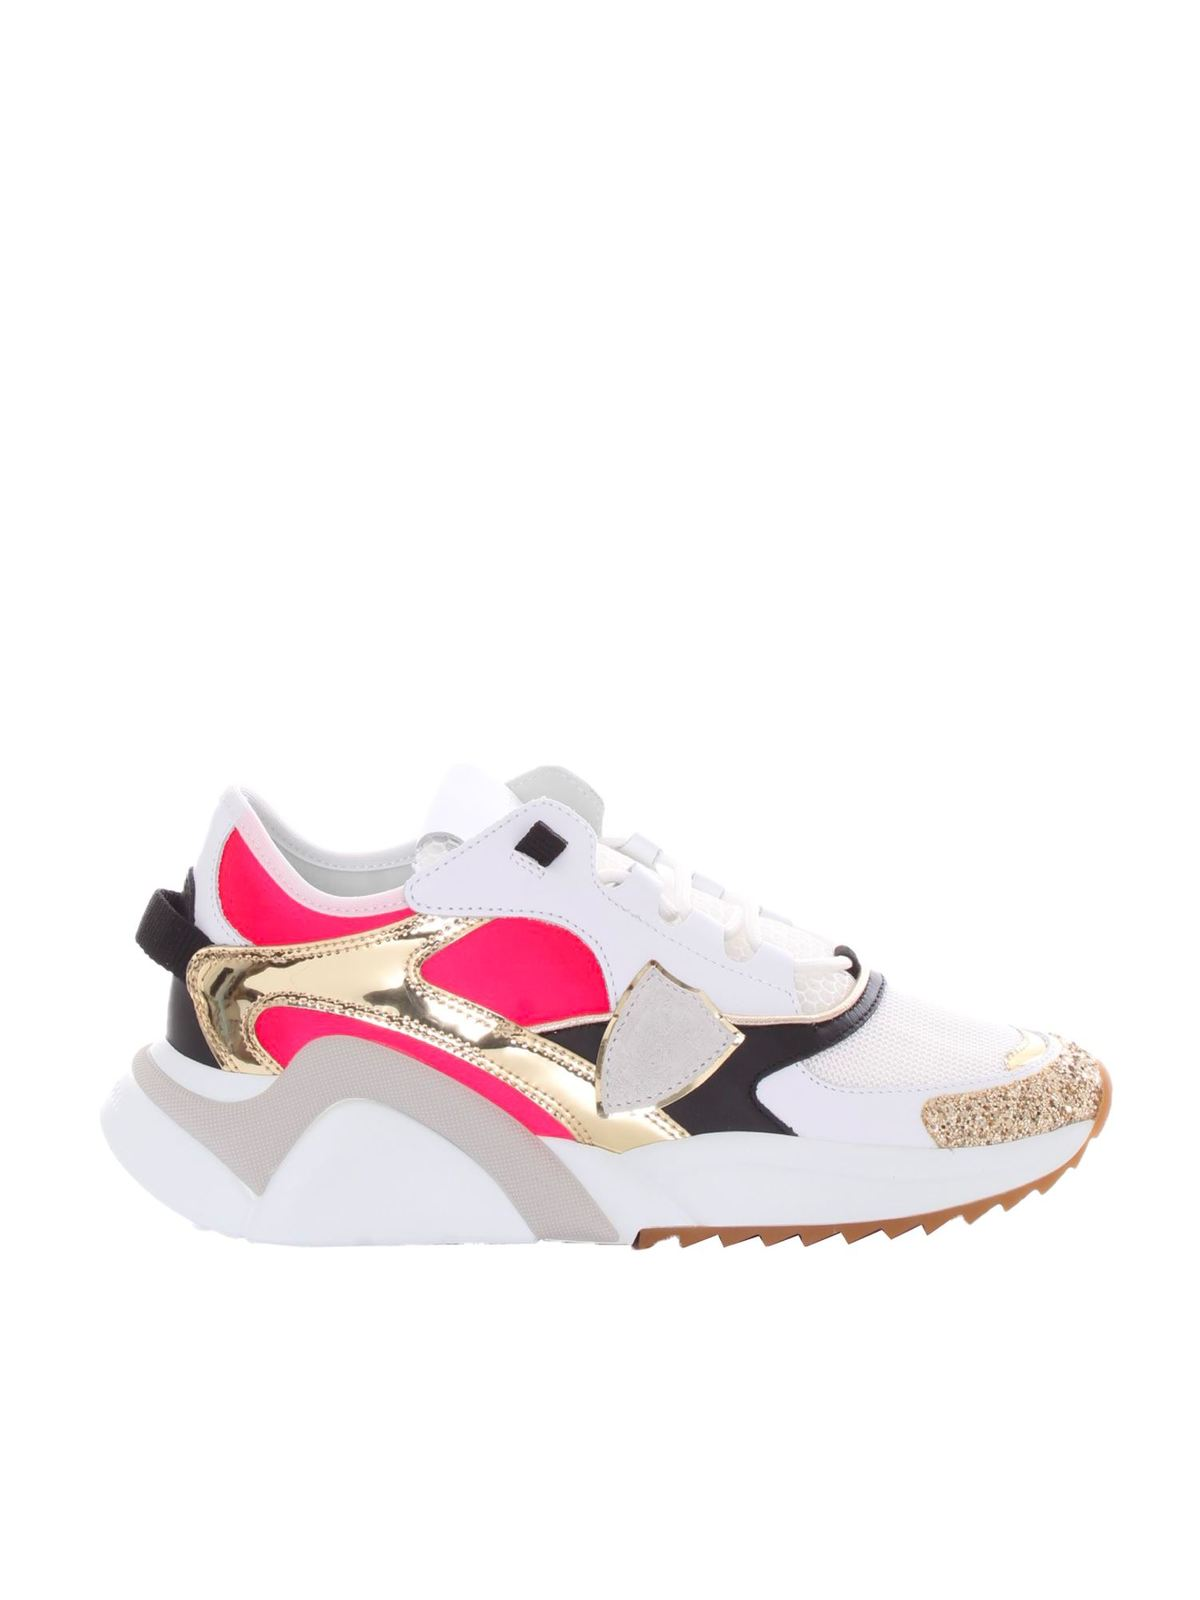 Philippe Model EZE LOW SNEAKERS IN WHITE AND FUCHSIA